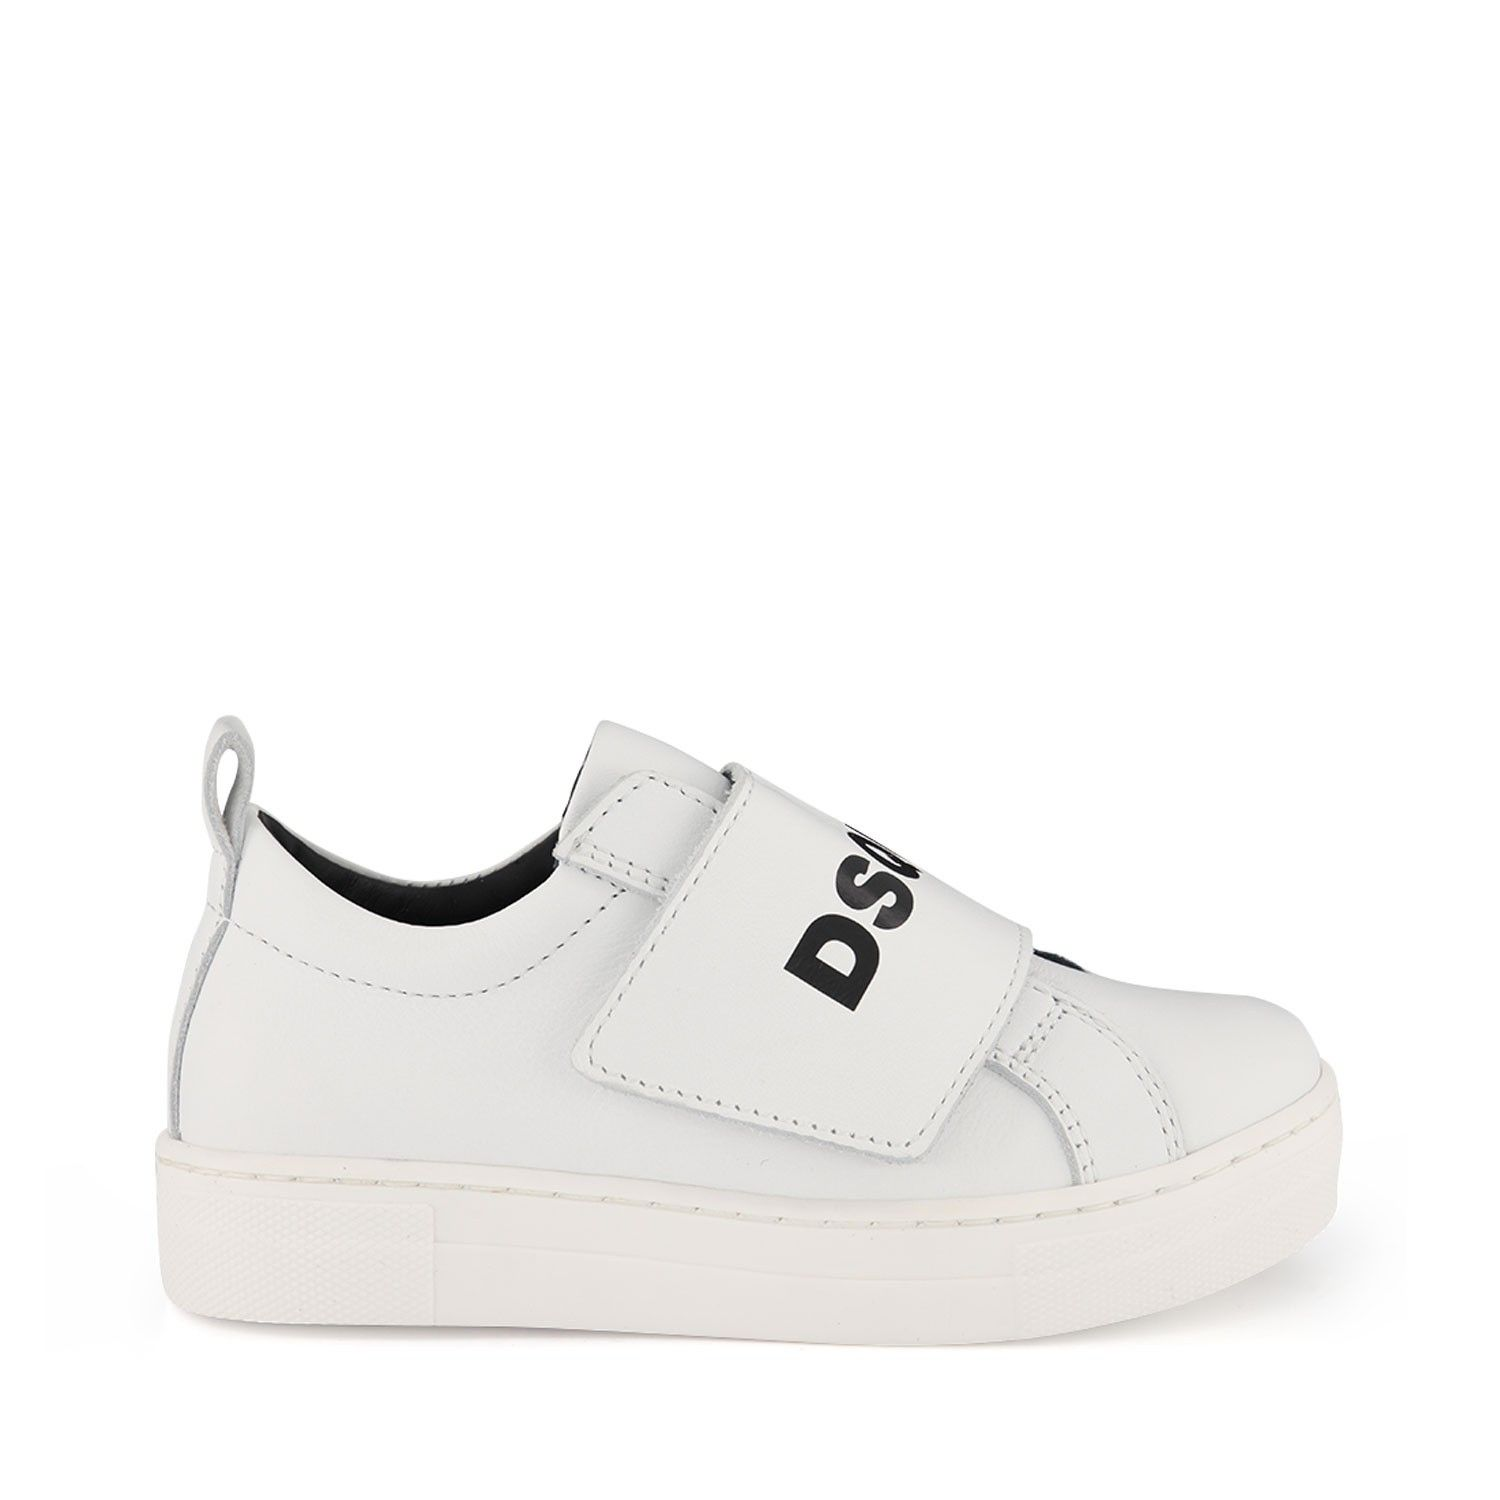 Picture of Dsquared2 63522 kids sneakers white